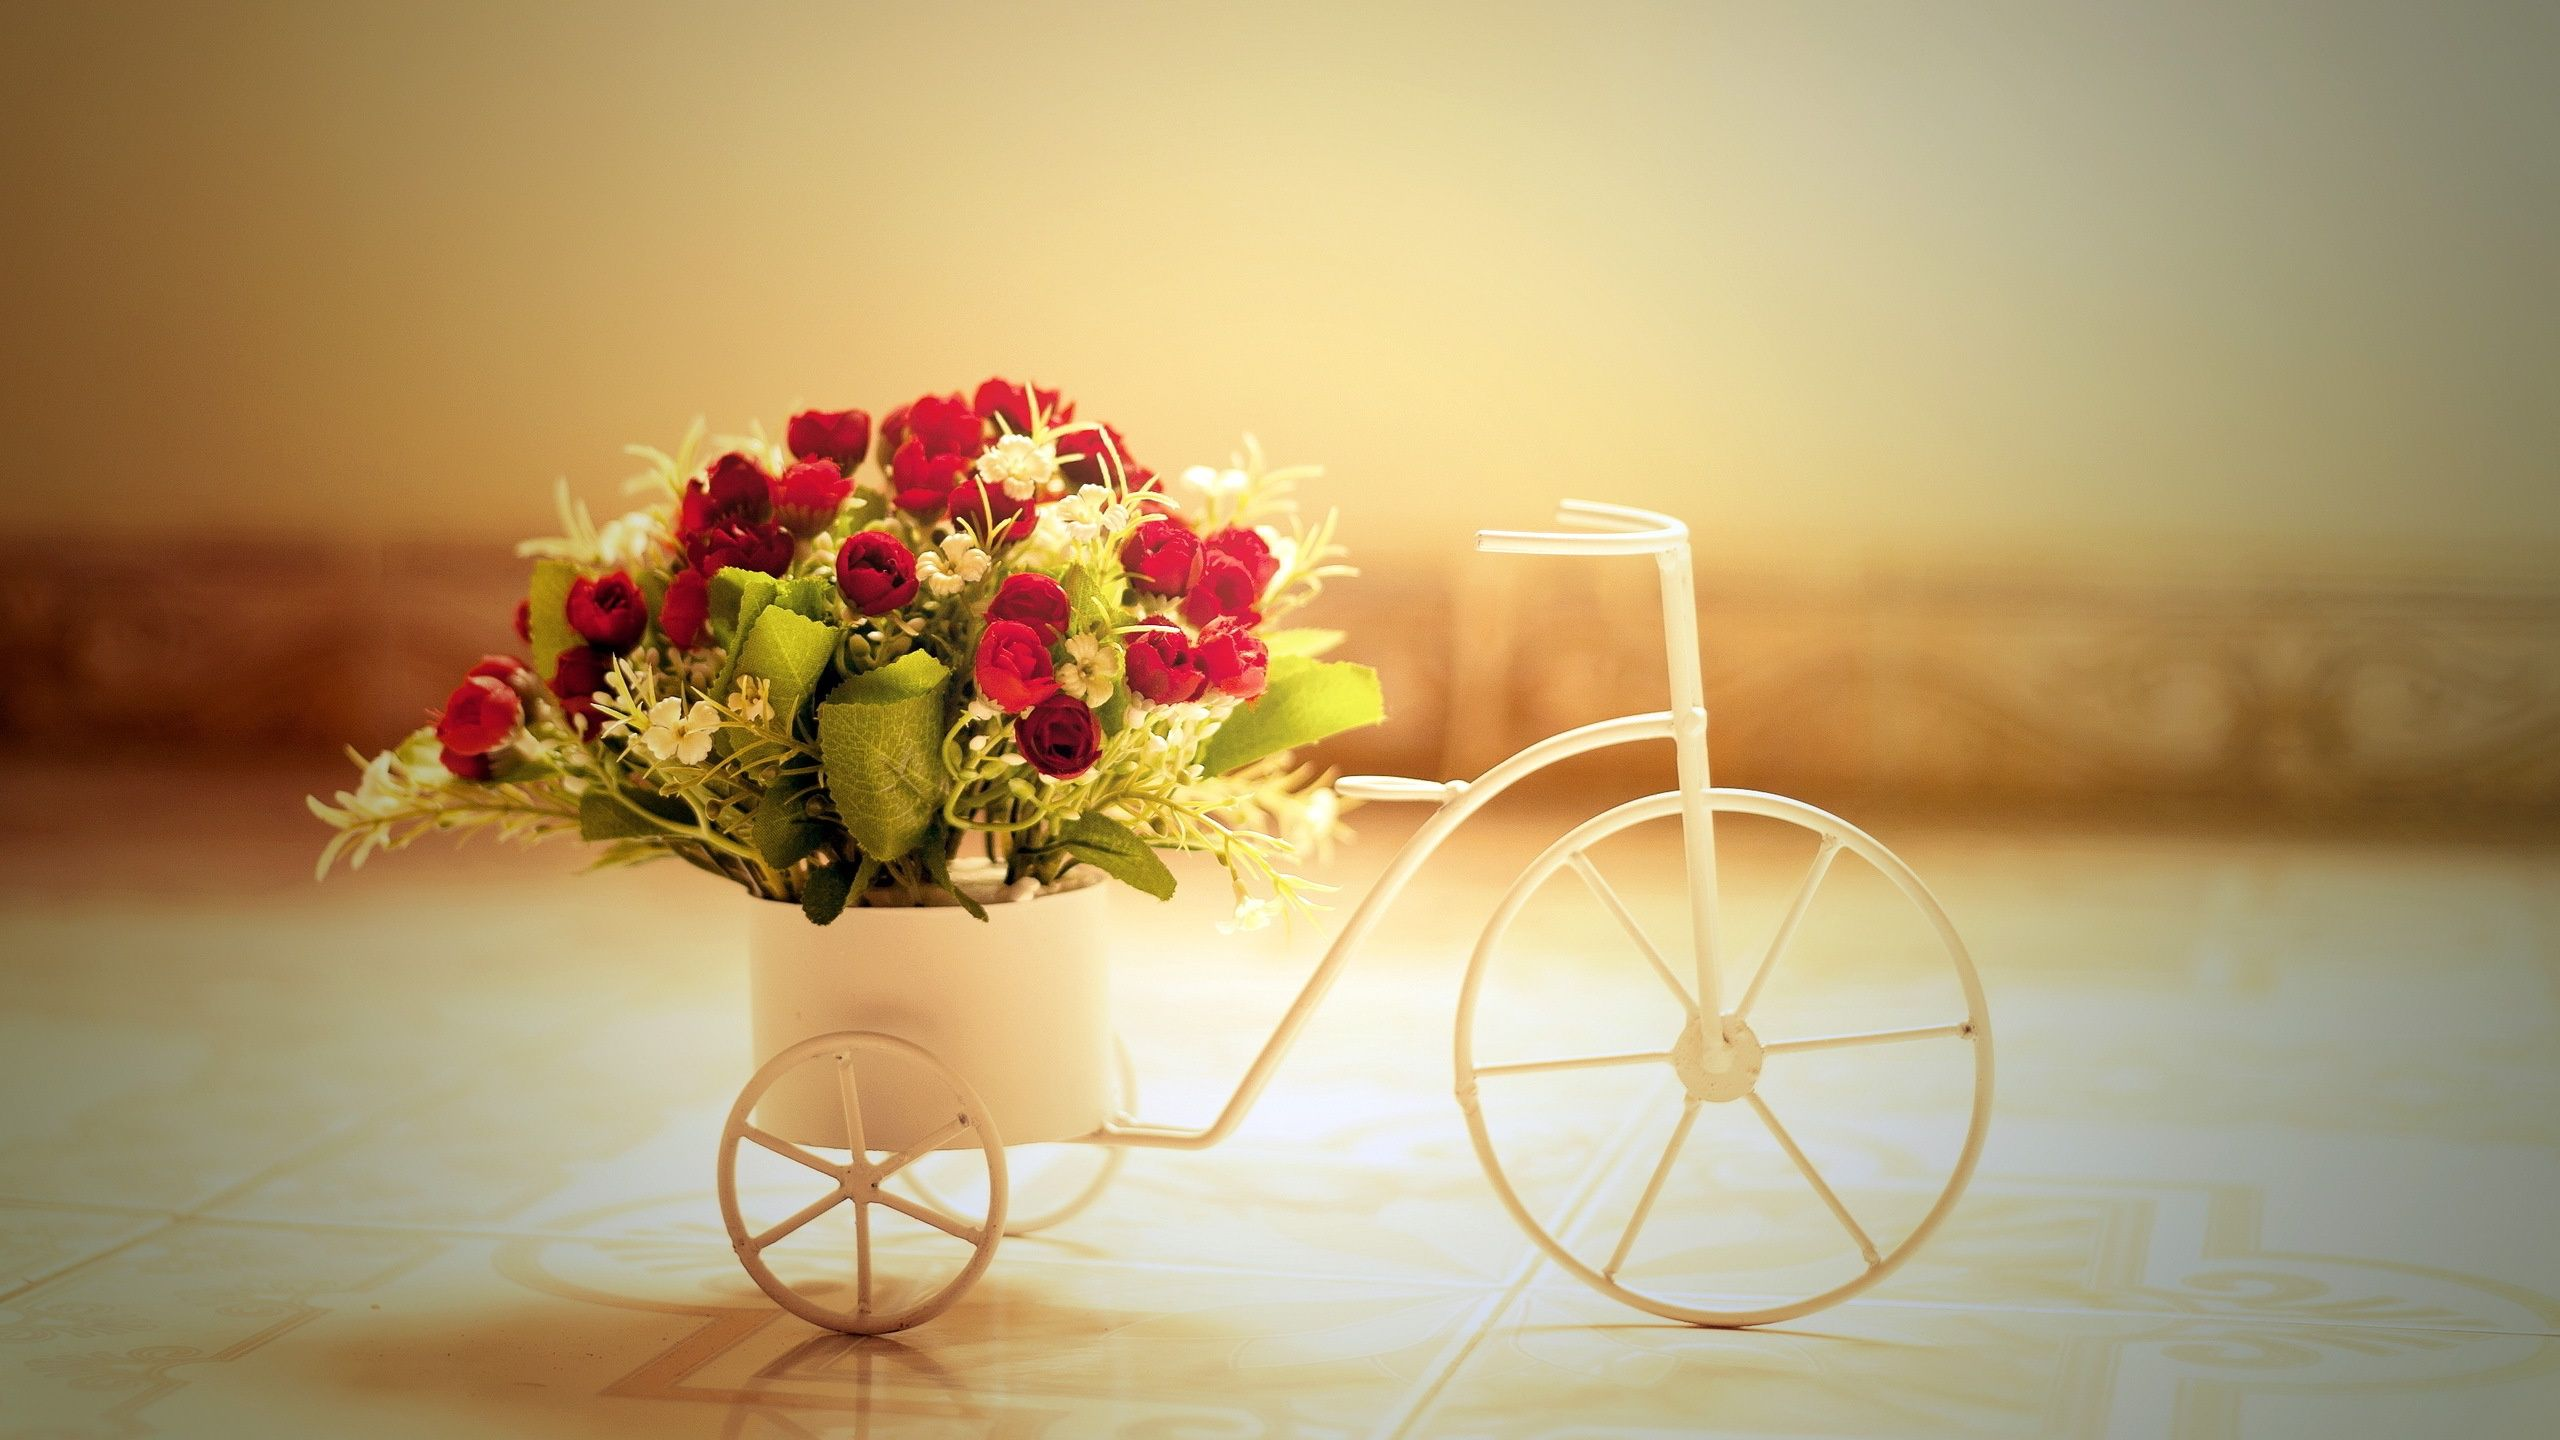 bicycles with flowers wallpaper - photo #28